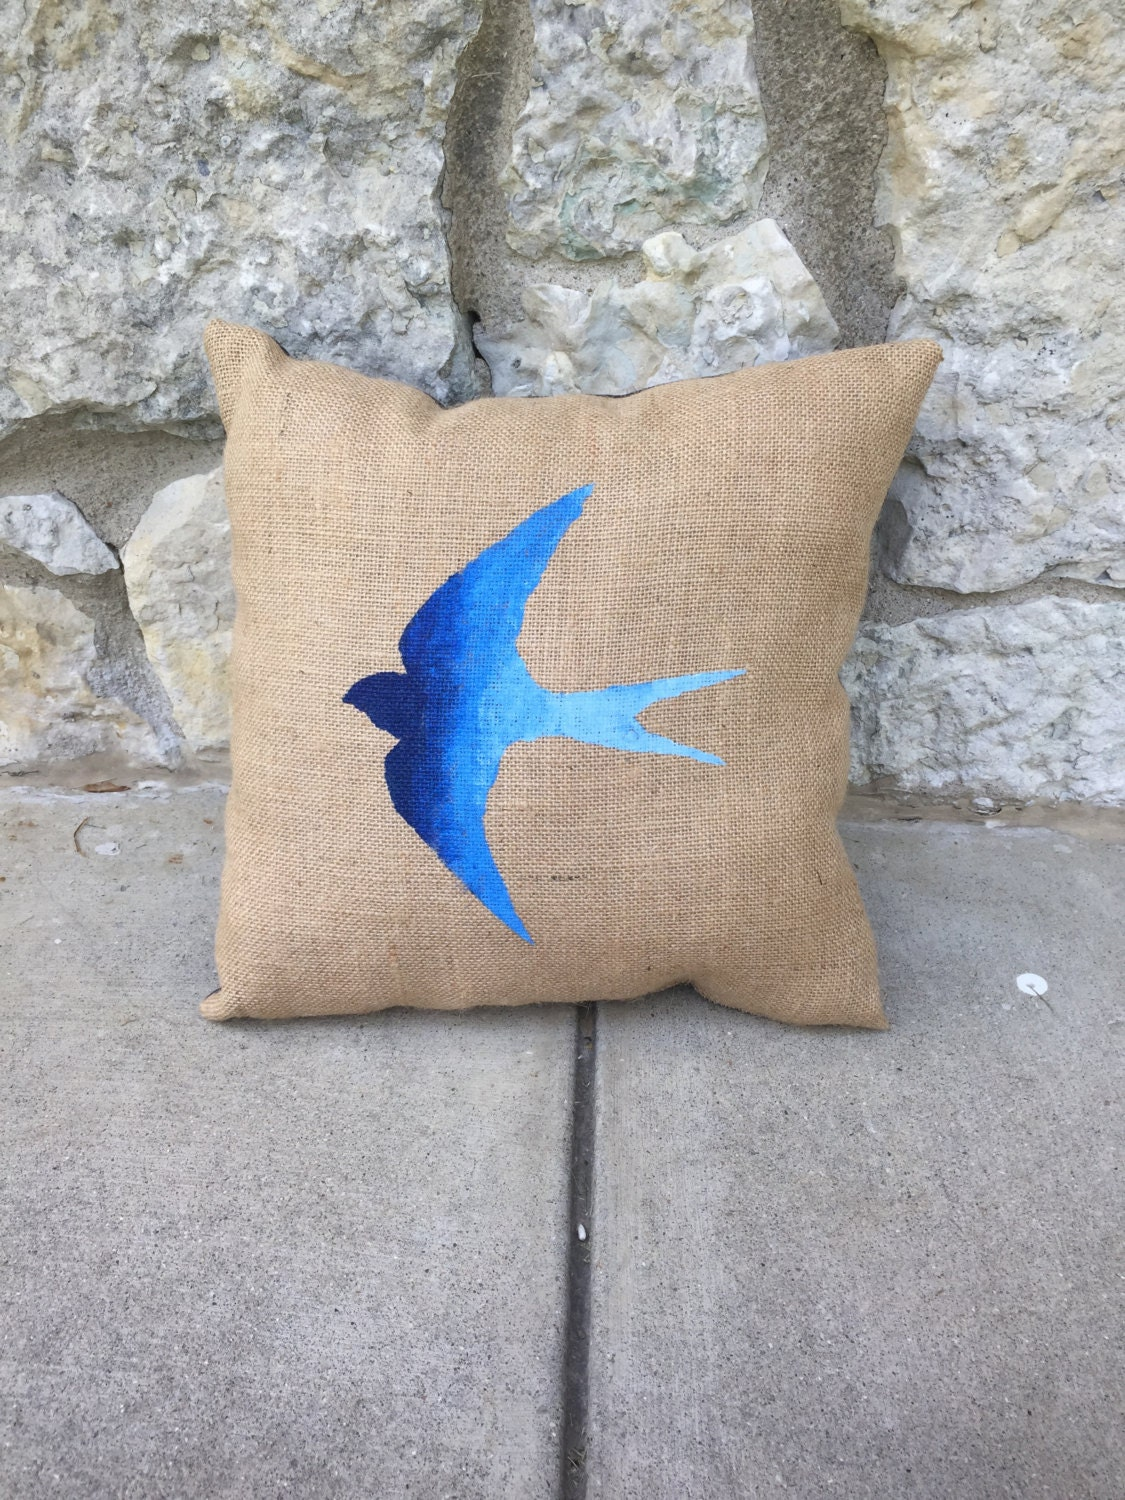 Shabby Chic Blue Pillows : Shabby chic burlap decorative pillow with painted ombre blue